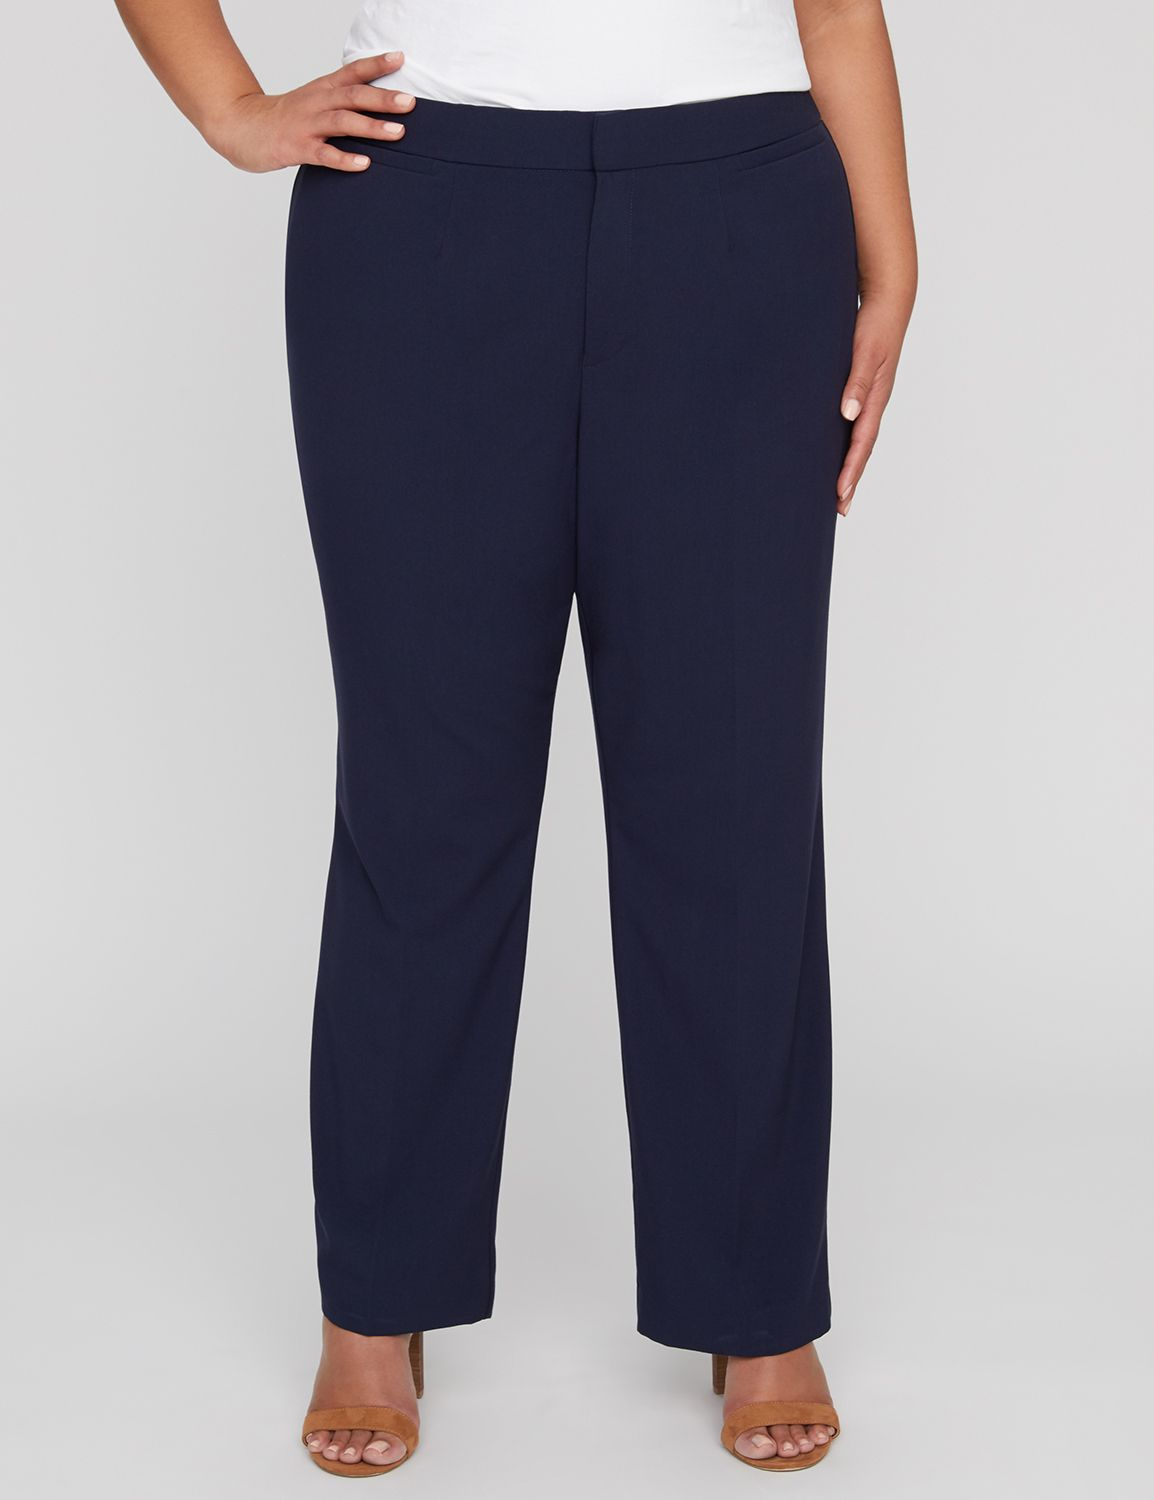 Right Fit Pant (Curvy) Right Fit Pant (Curvy) MP-300043655